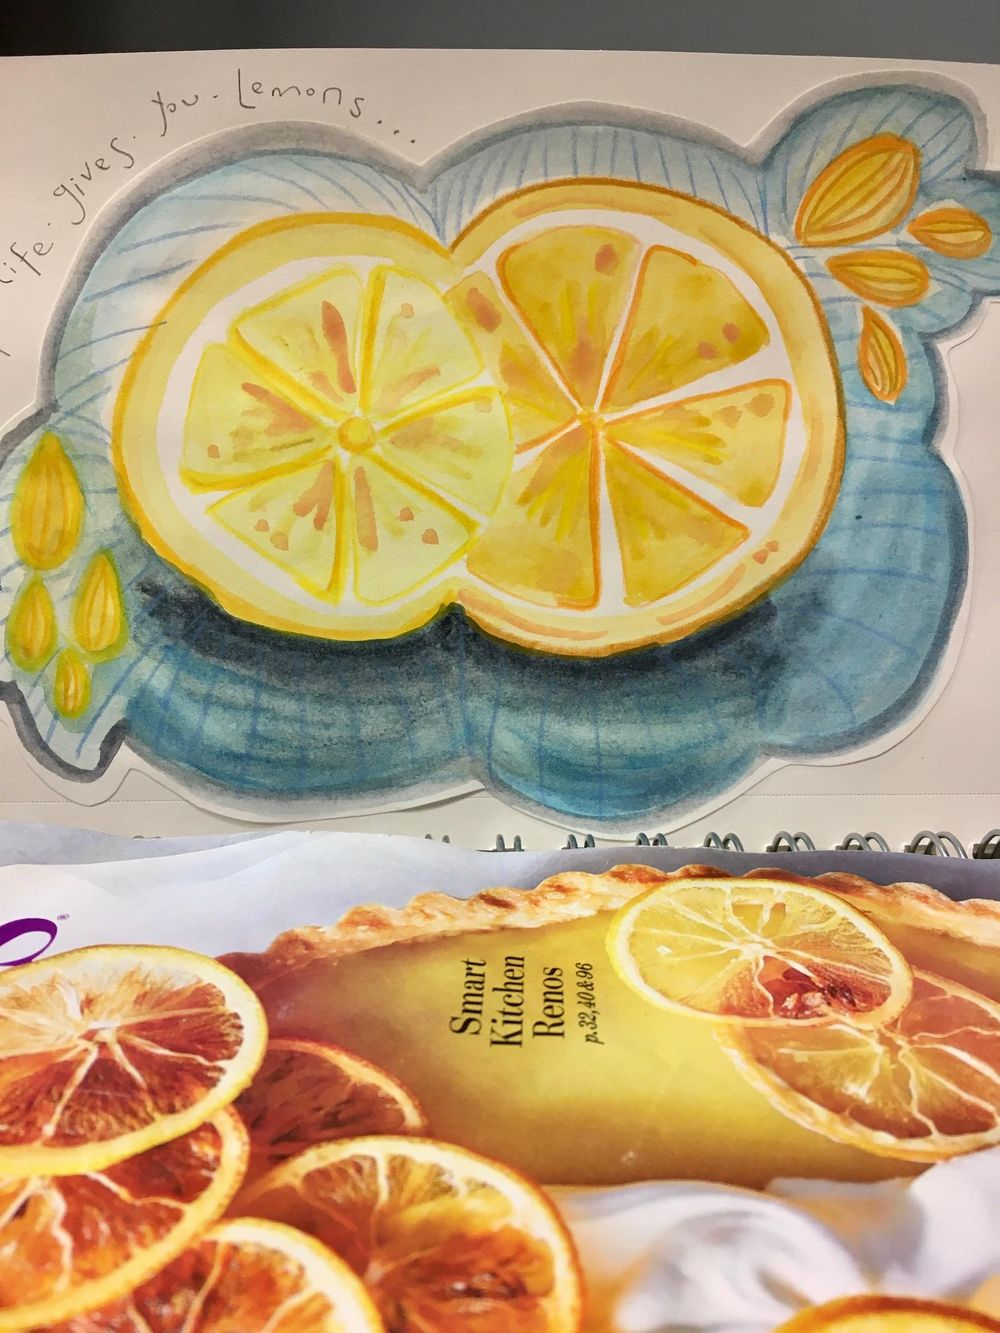 Sonia's Magic Sketchbook - image 2 - student project